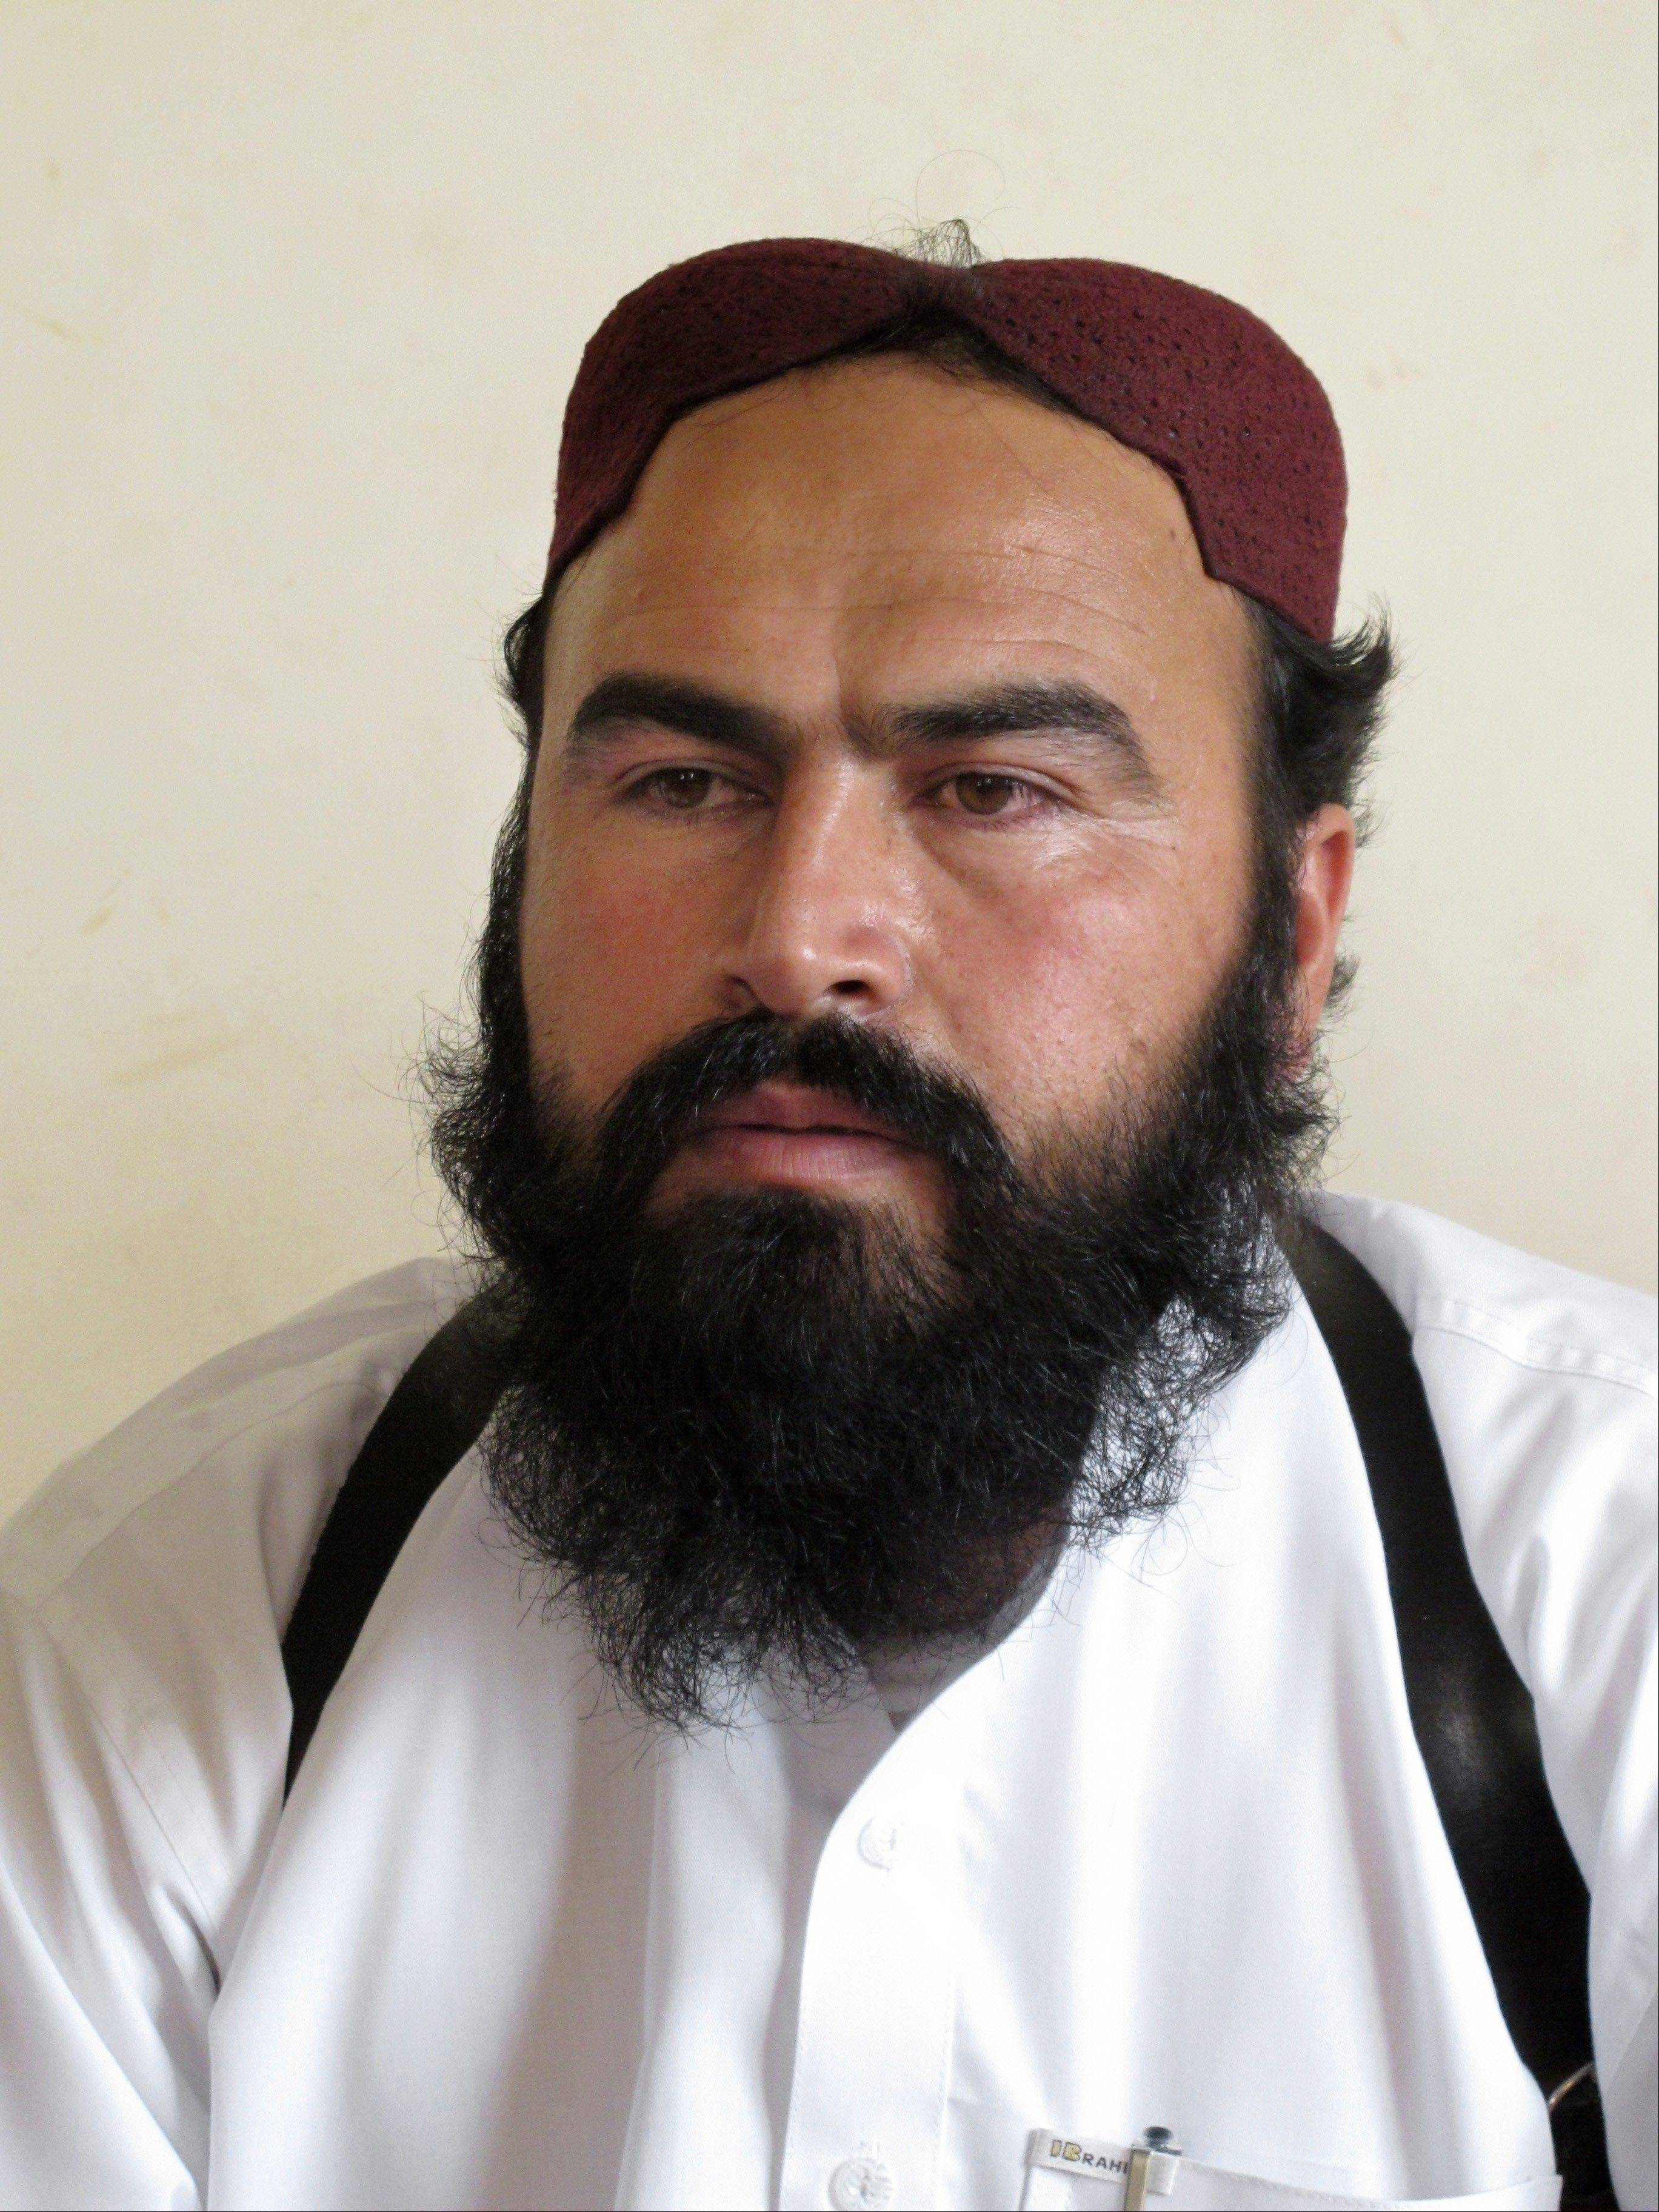 Associated Press File Photo, 2011Taliban No. 2 commander Waliur Rehman. Pakistani intelligence officials say the Pakistani Taliban's deputy leader was buried hours after he was killed in a U.S. drone strike.